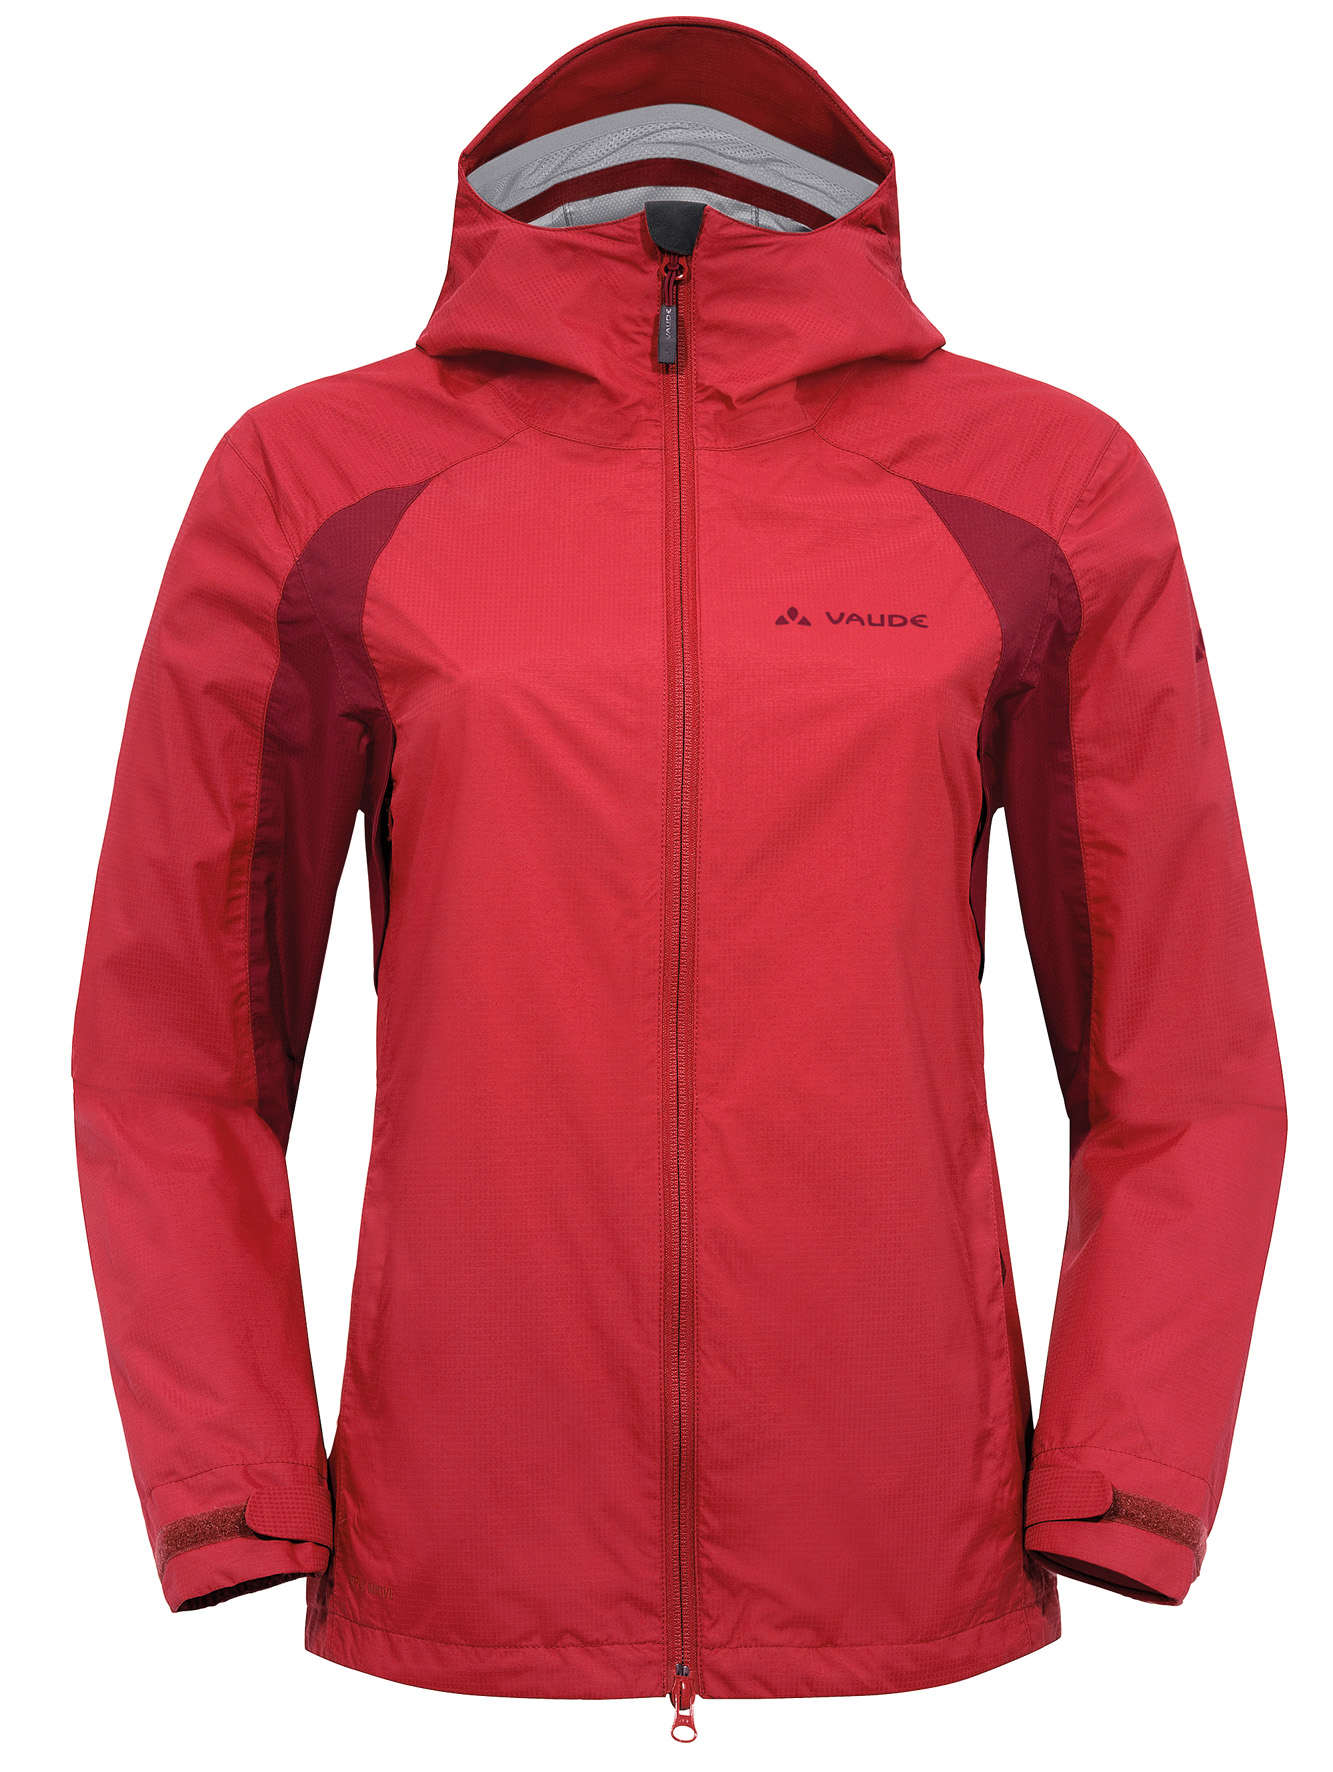 VAUDE Women´s Yaras Jacket red Größe 42 - schneider-sports